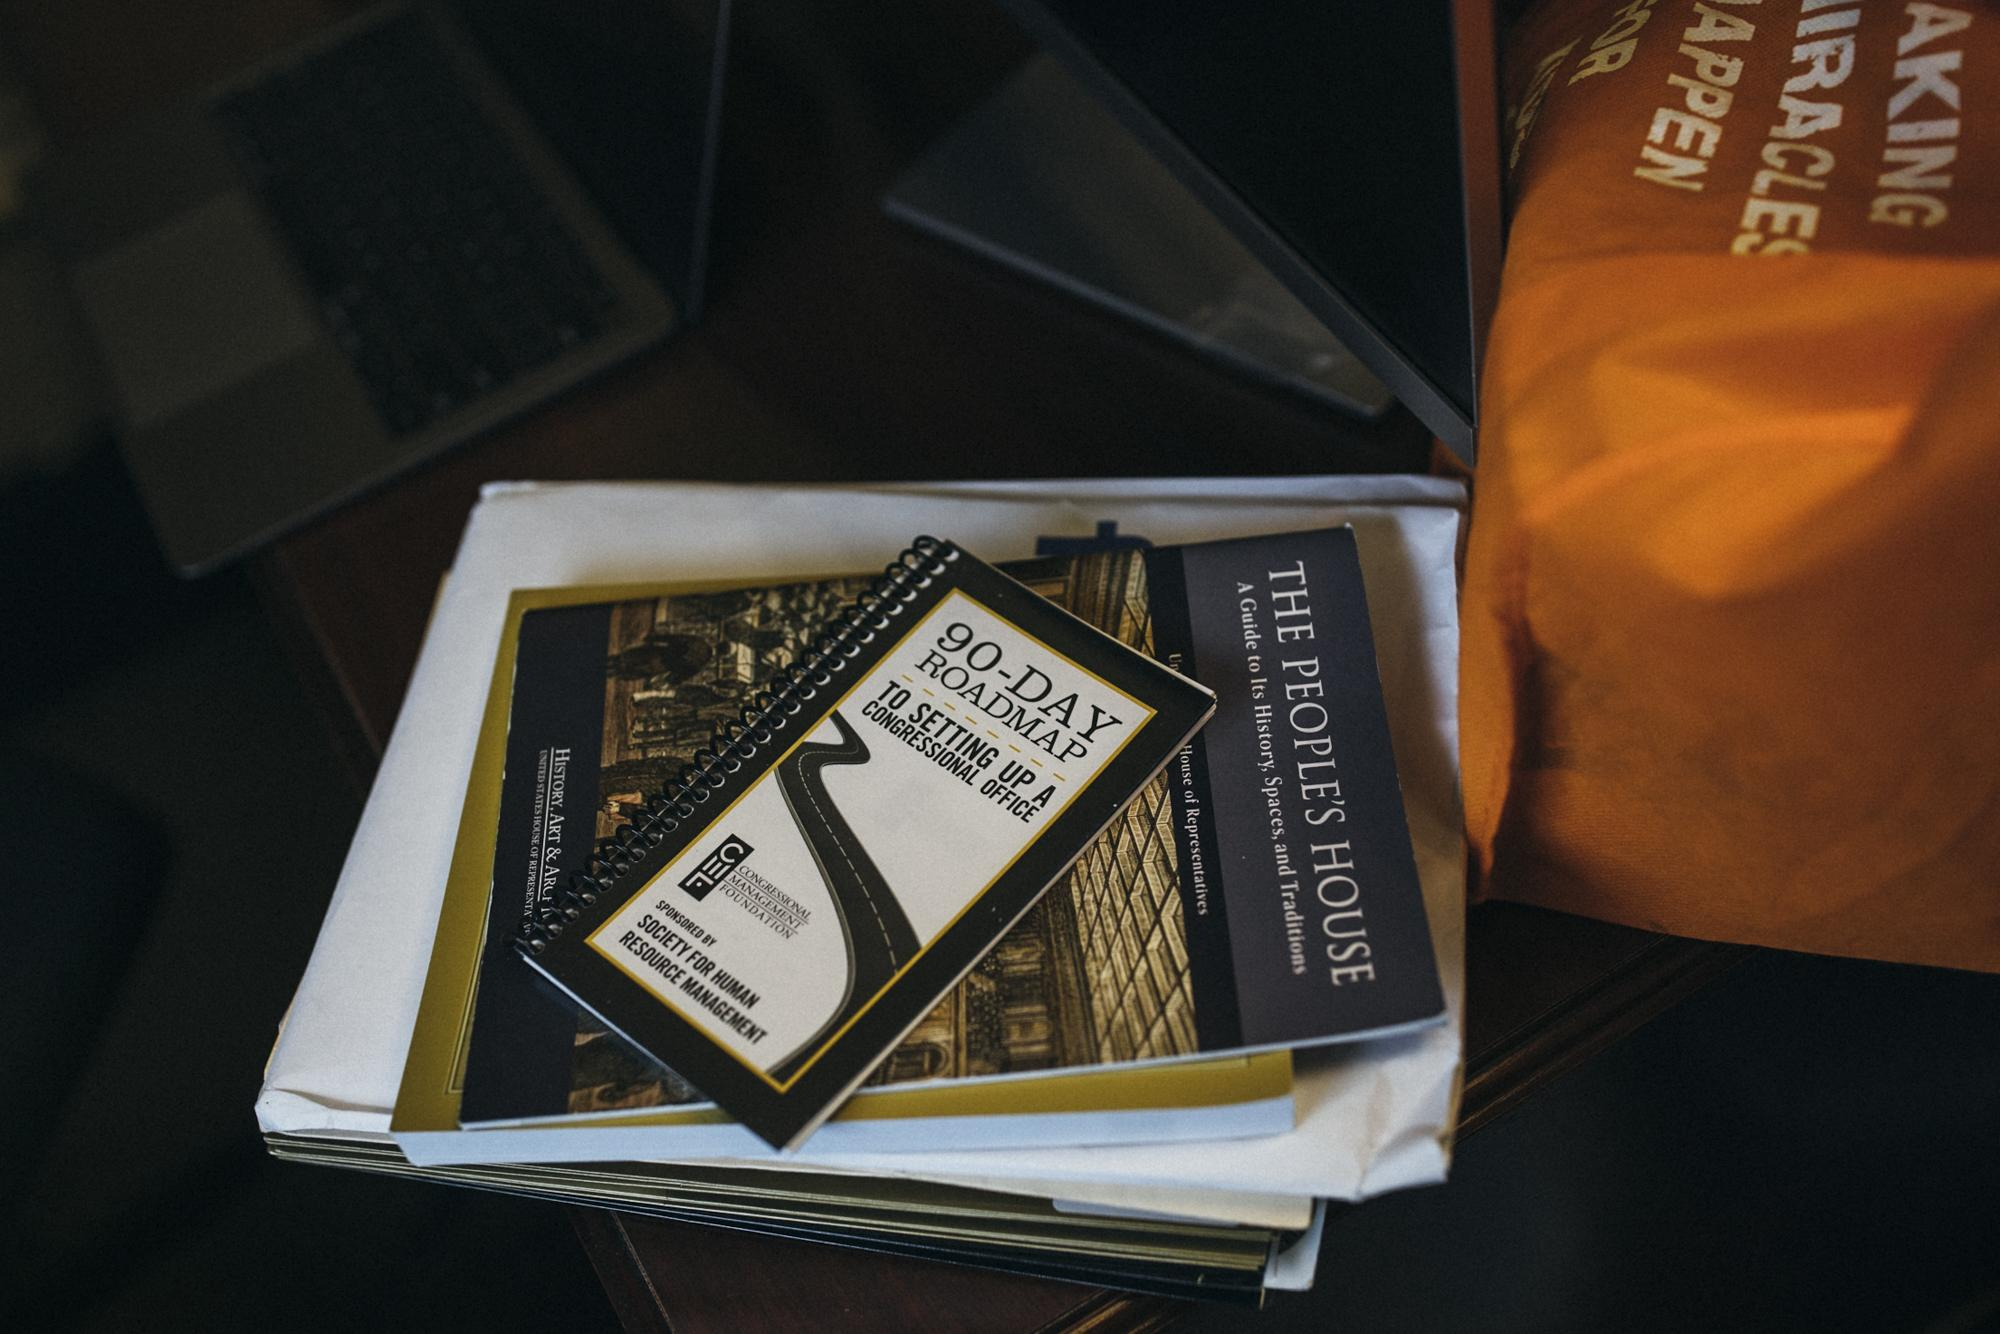 """A book whose title reads """"90-Day Roadmap"""" sits on top of a desk in the office of Congresswoman Alexandria Ocasio-Cortez in the Cannon House Office Building, in Washington D.C. District of Columbia, United States of America, January 2, 2019."""